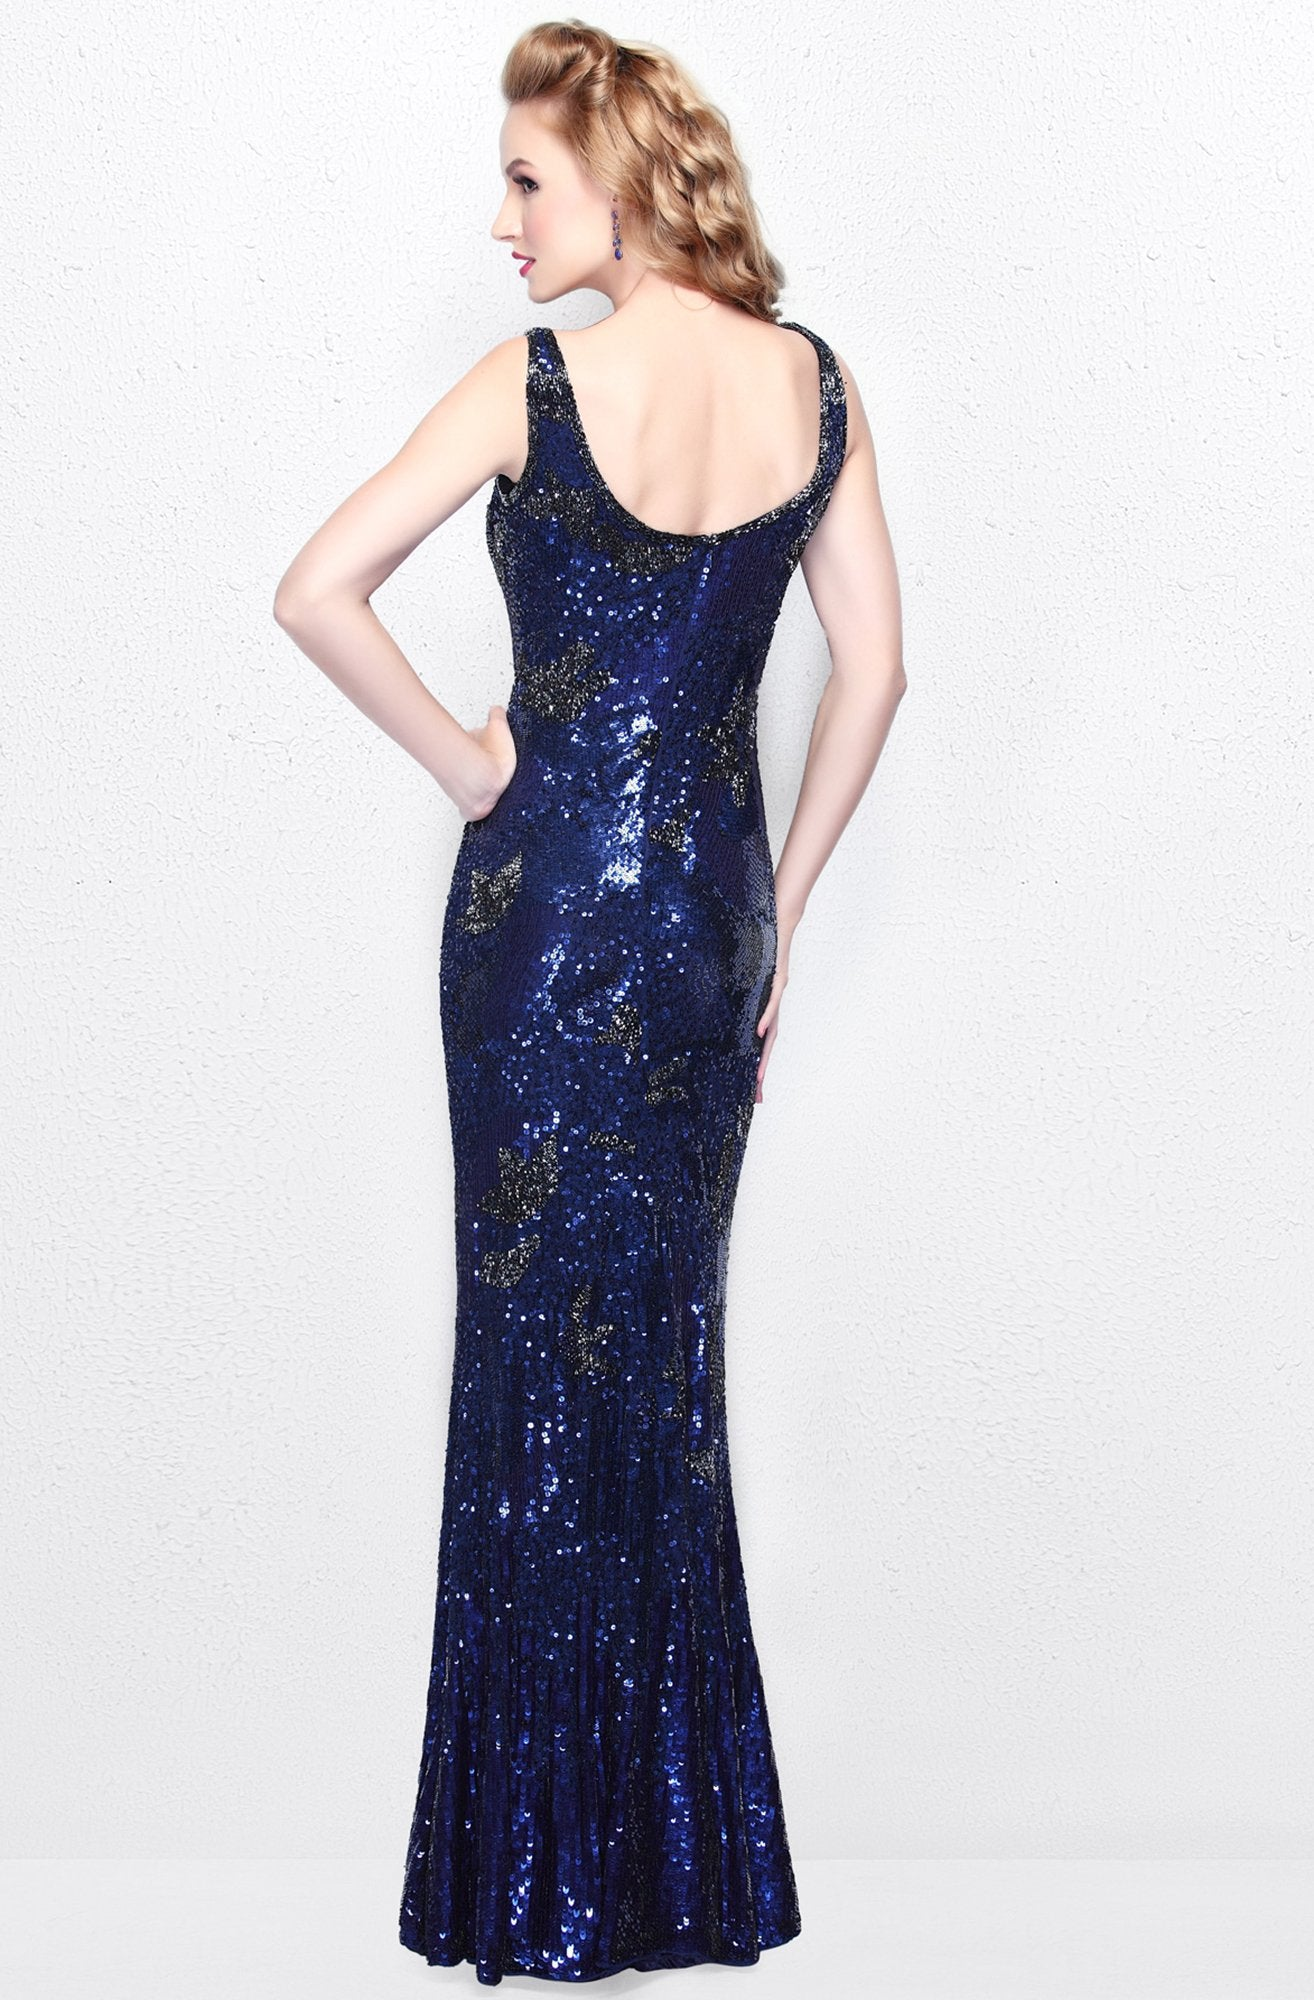 Primavera Couture - Sequined V-Neck Long Sheath Dress 1702 in Blue